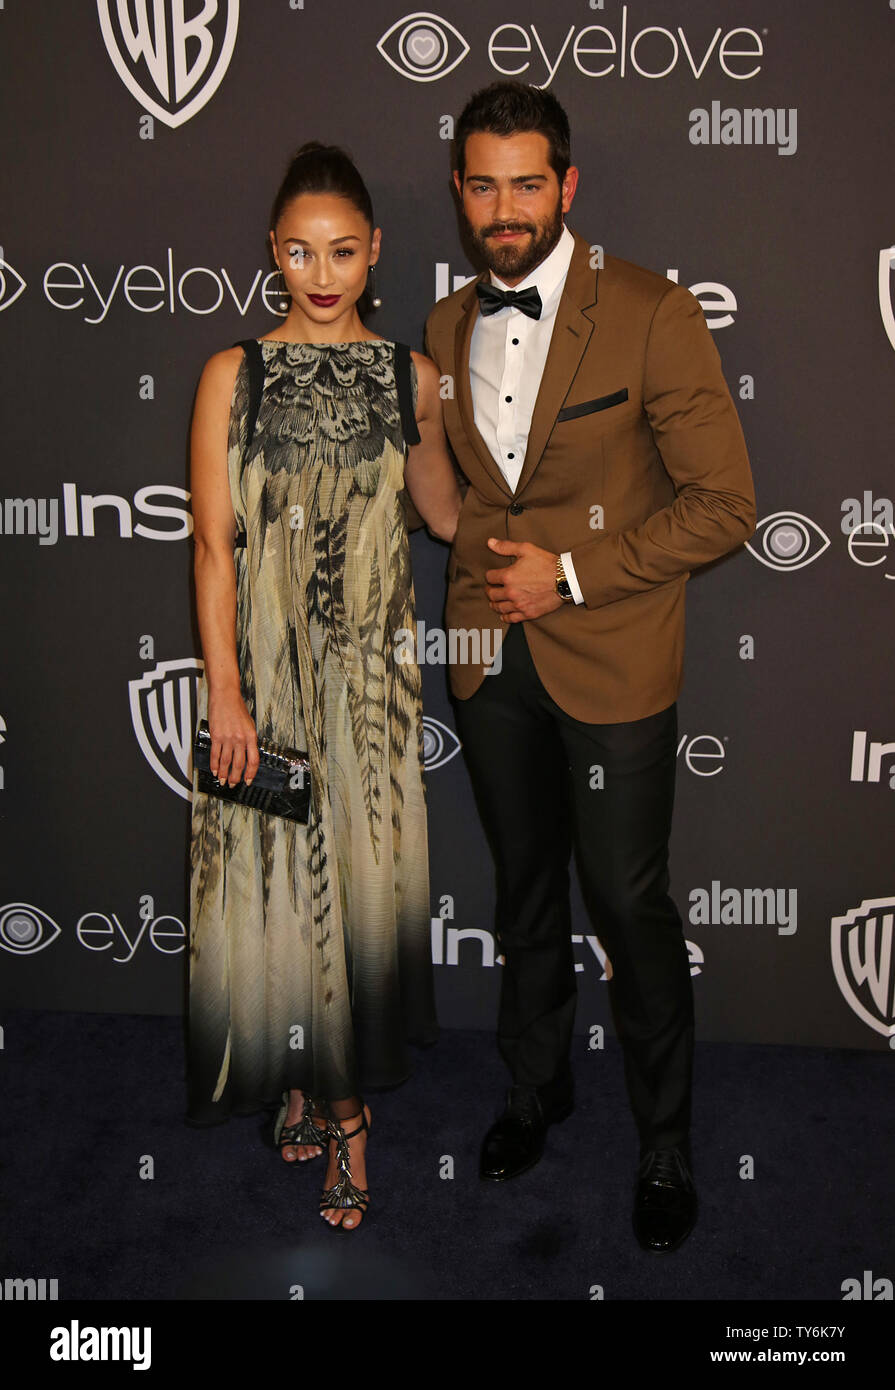 Cara Santana (L) and Jesse Metcalfe attend the 18th annual InStyle and Warner Bros. Golden Globe after-party at the Beverly Hilton Hotel in Beverly Hills, California on January 8, 2017.  Photo by David Silpa/UPI - Stock Image